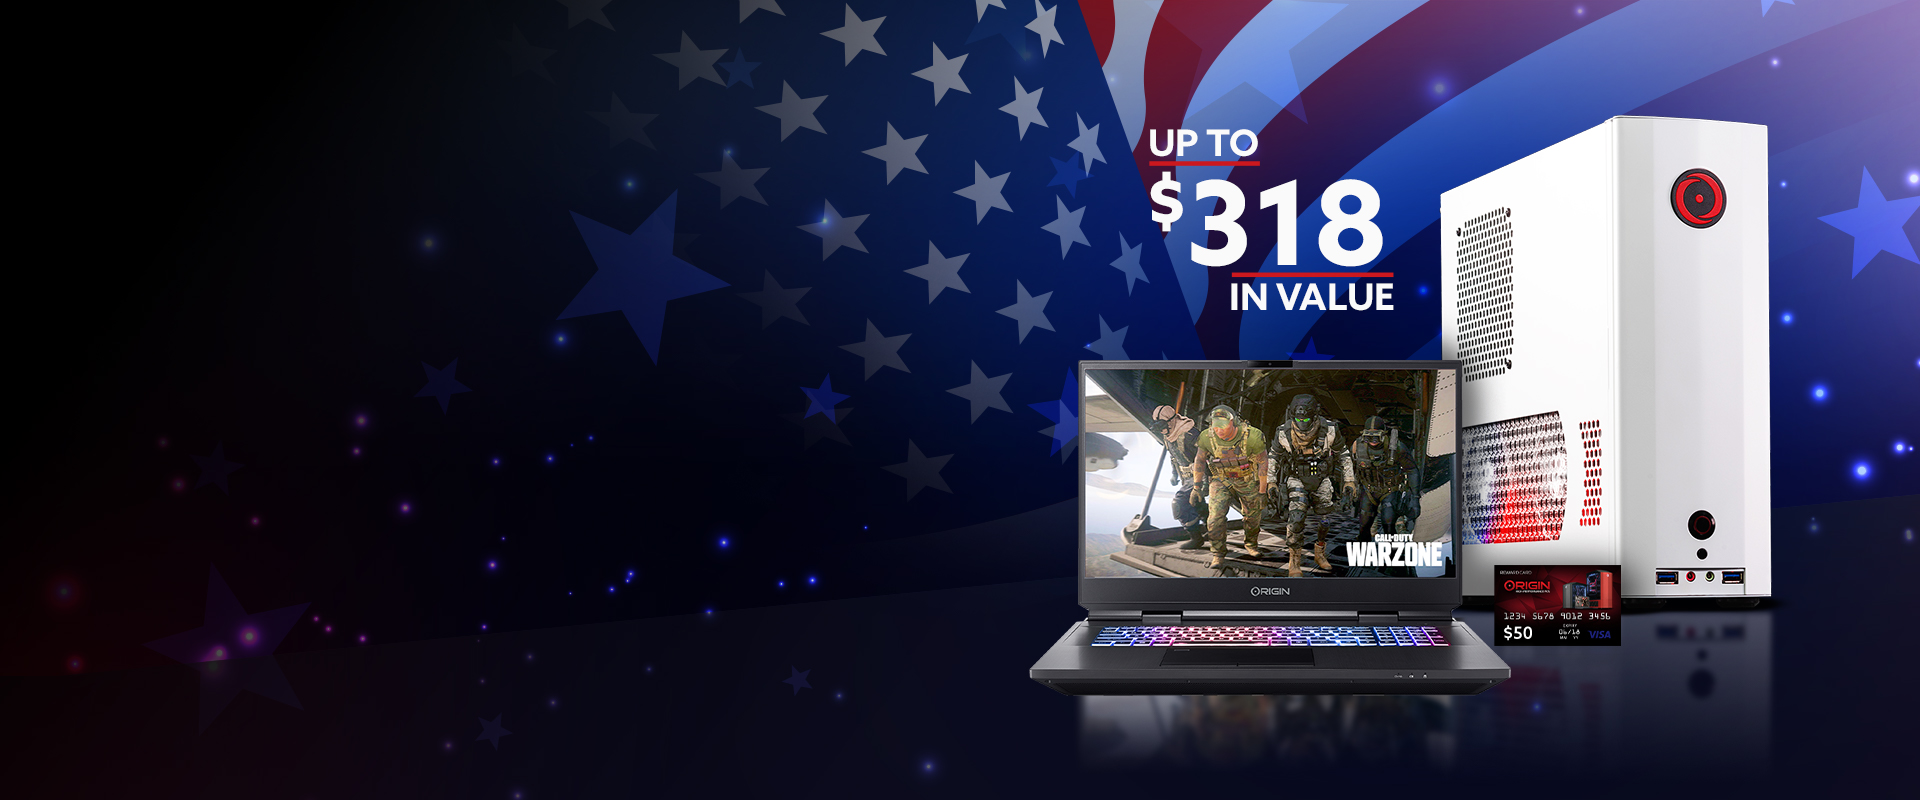 JULY 4TH SPECIAL OFFERS